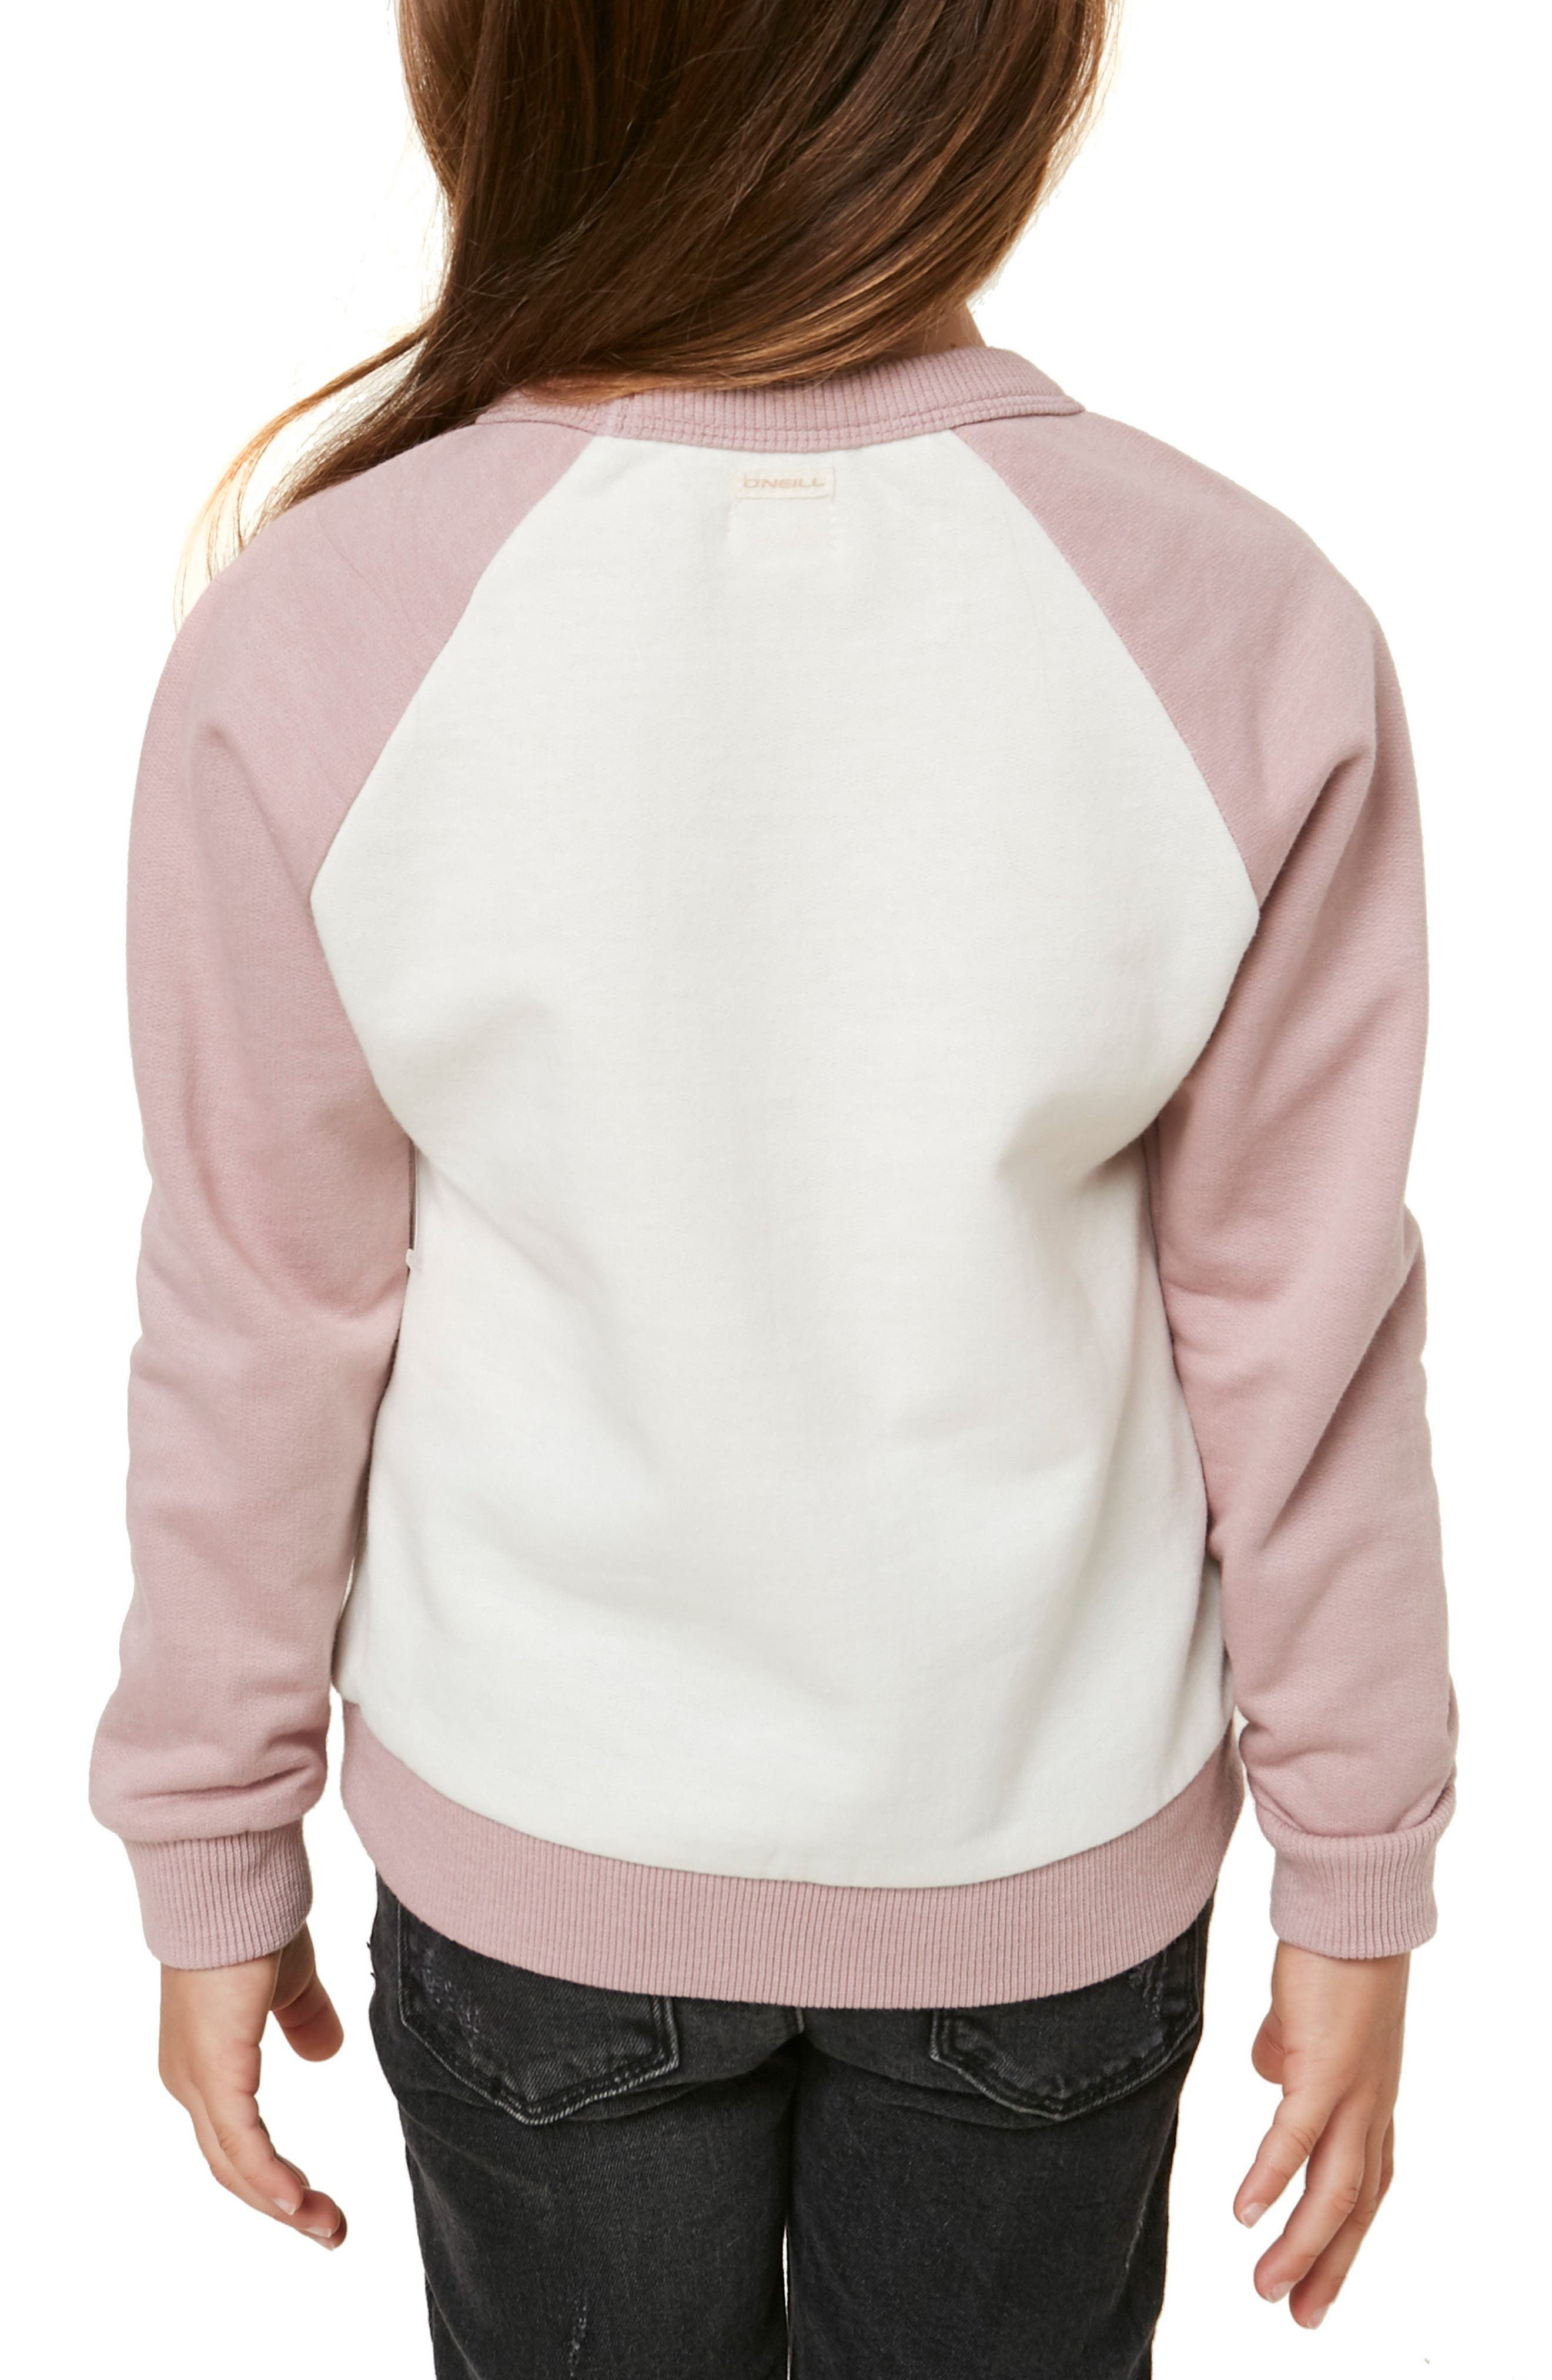 Sol Embroidered Sweatshirt,                             Alternate thumbnail 4, color,                             506